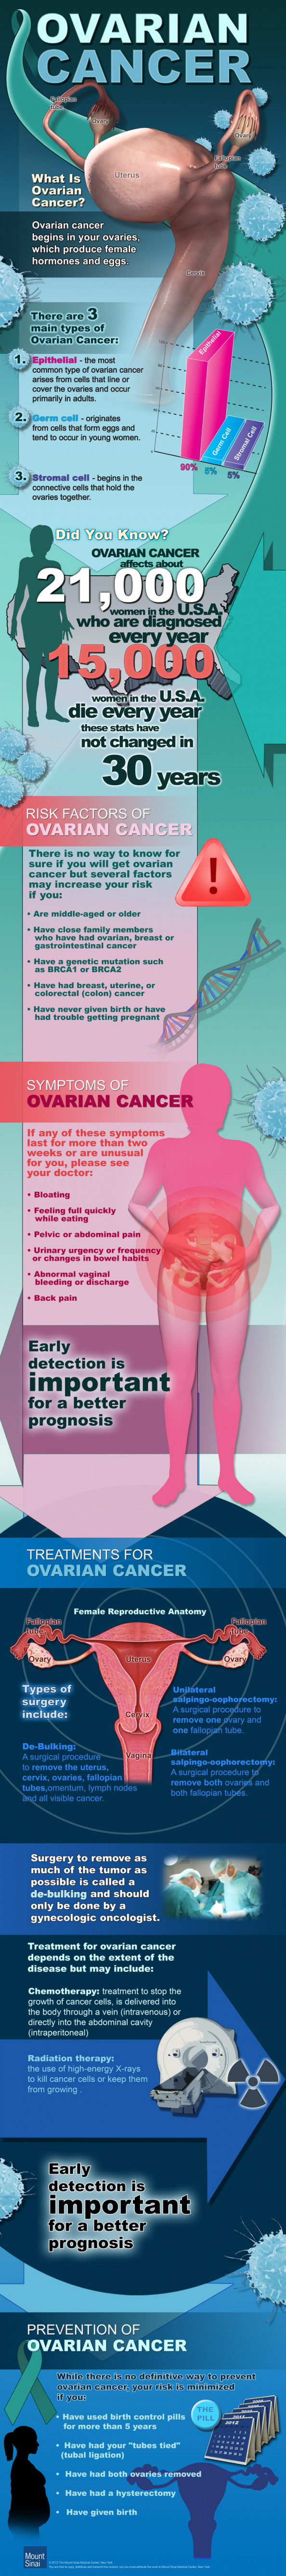 Ovarian Cancer: What is Ovarian Cancer? Infographic